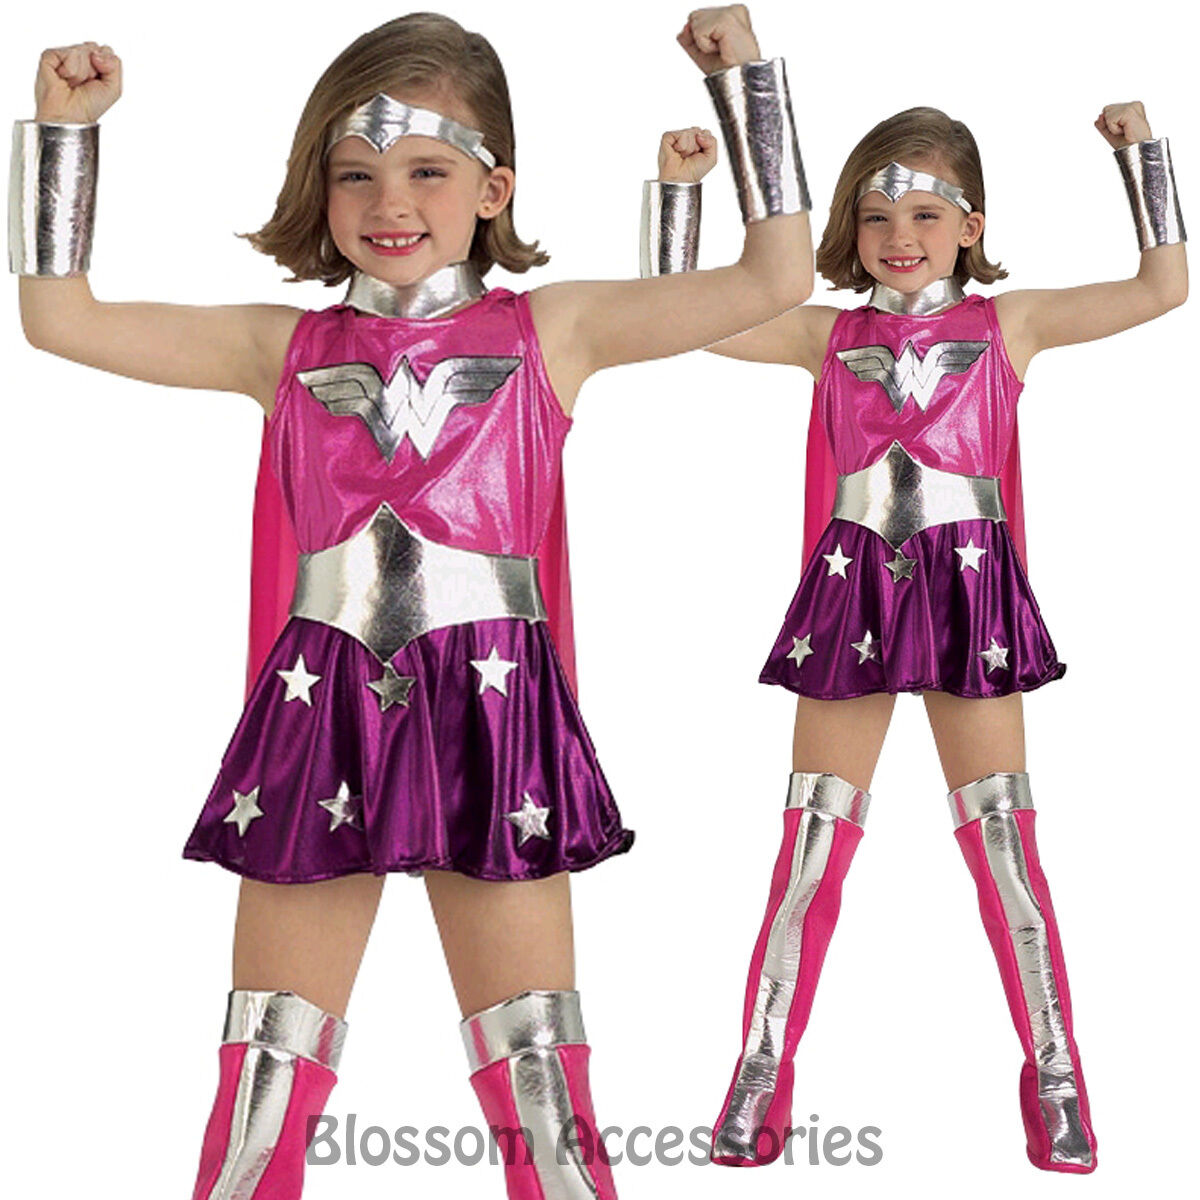 Justice League - Pink Wonder Woman Super Hero Dress Girls Book Week Costume